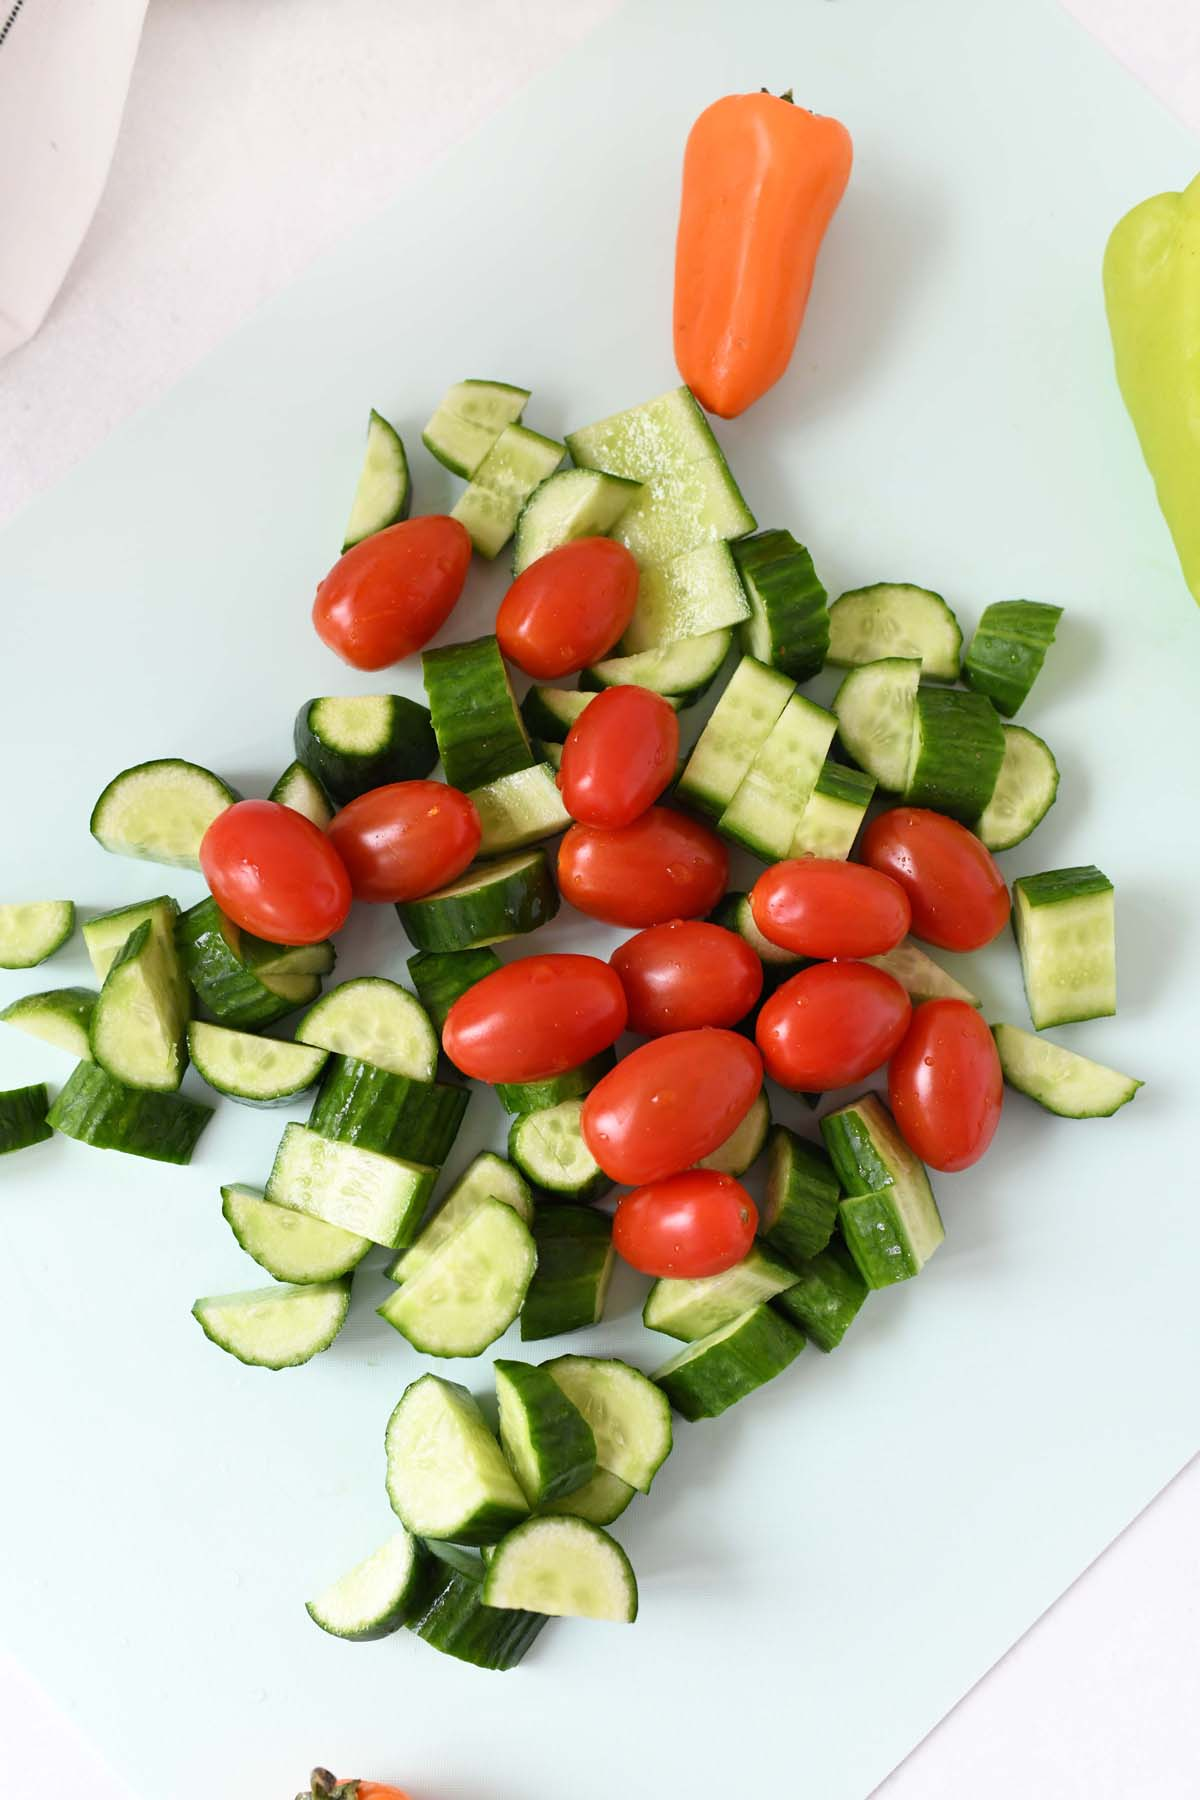 Chopped Cucumber pieces and tomatoes on a blue cutting board.